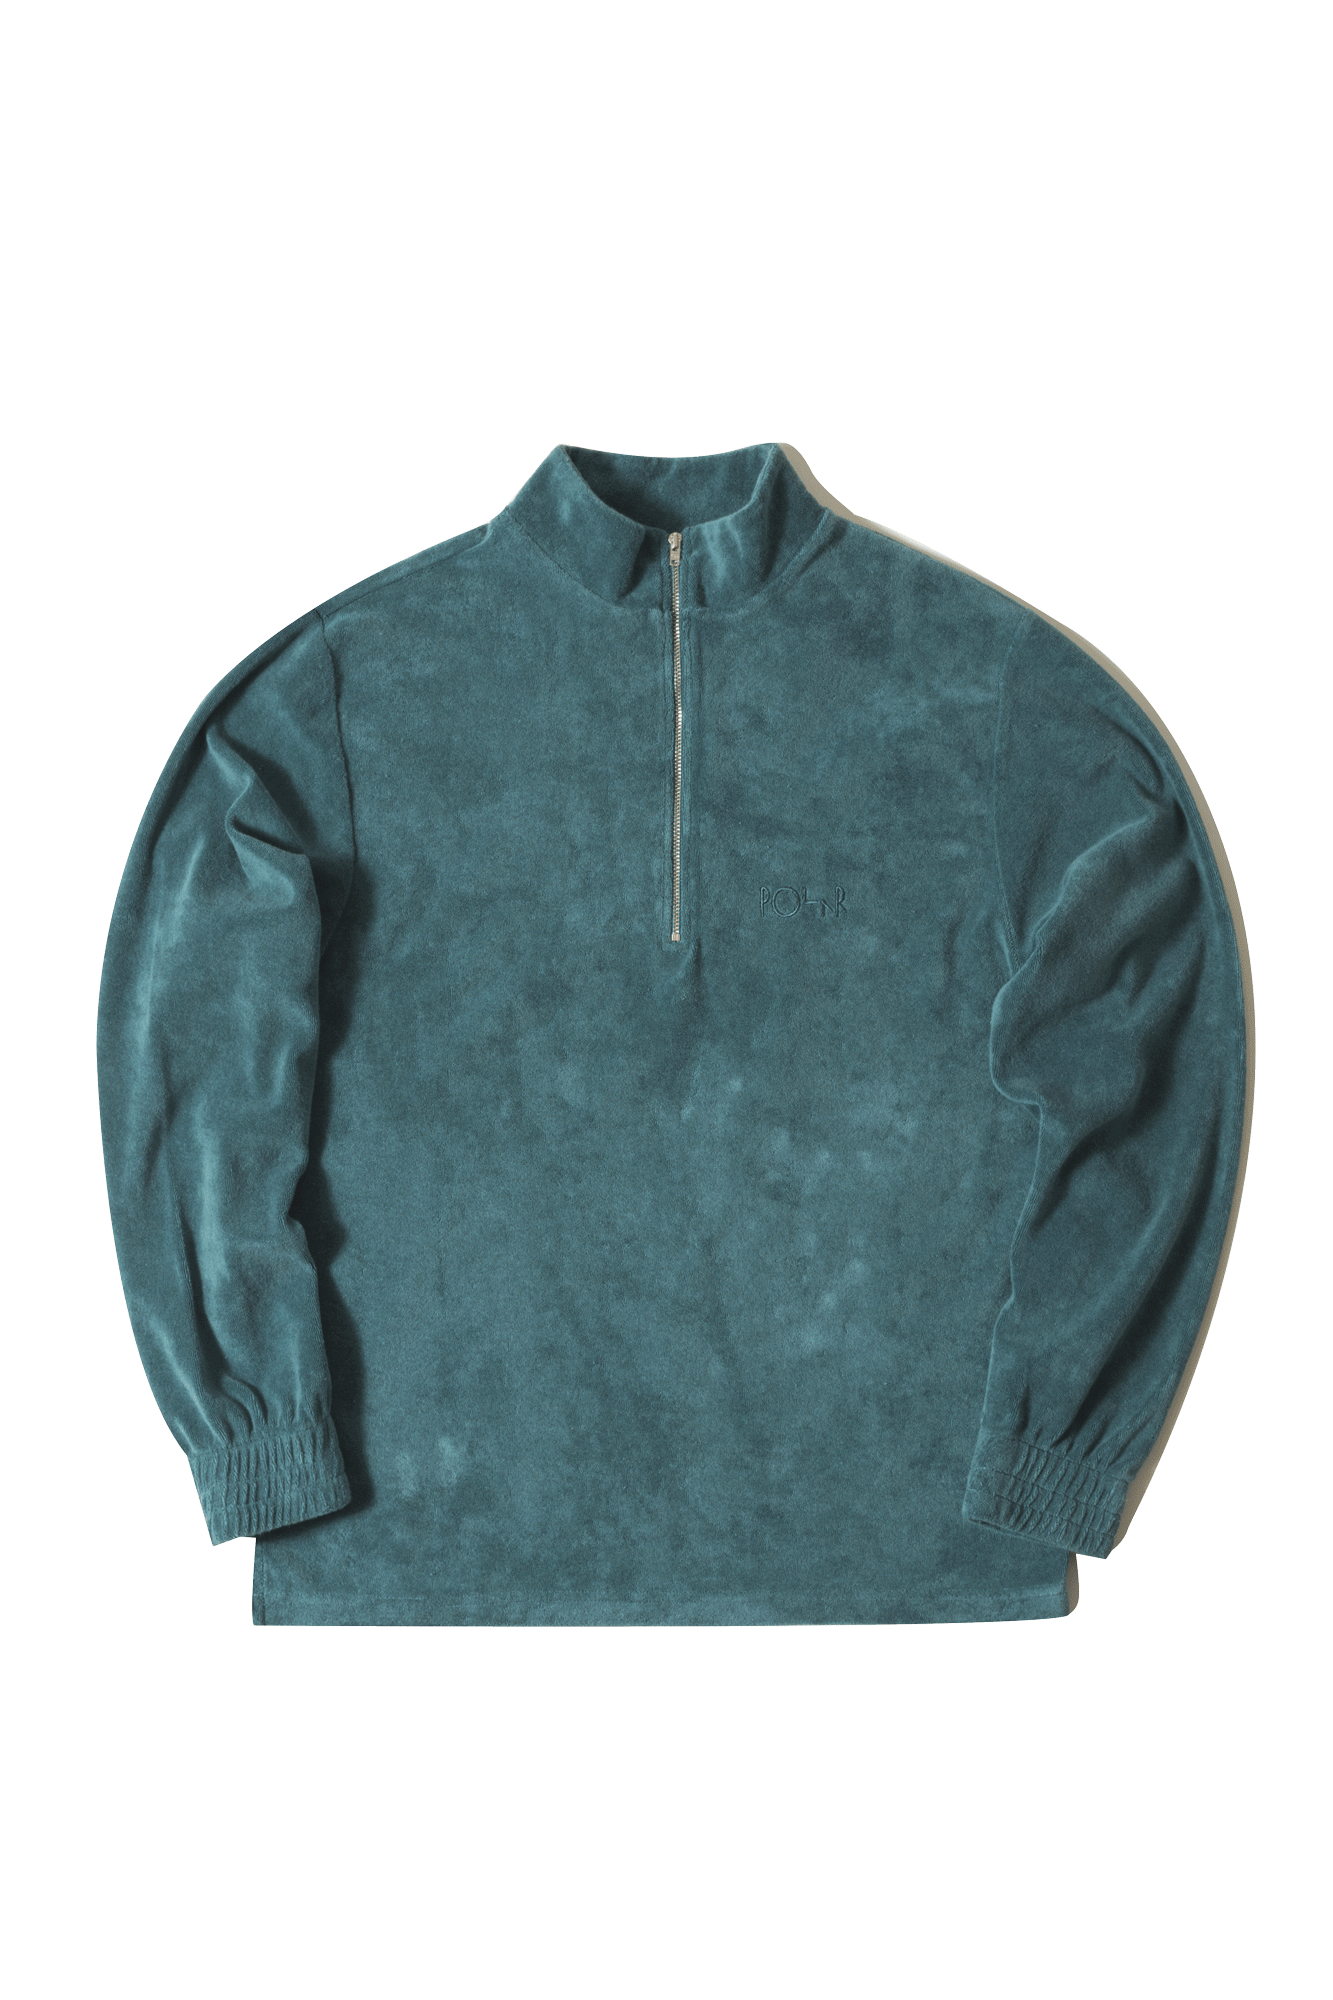 Polar Sweaters Terry Halfzip Multicolor POLHALFZIP#000#TEAL#XS - One Block Down